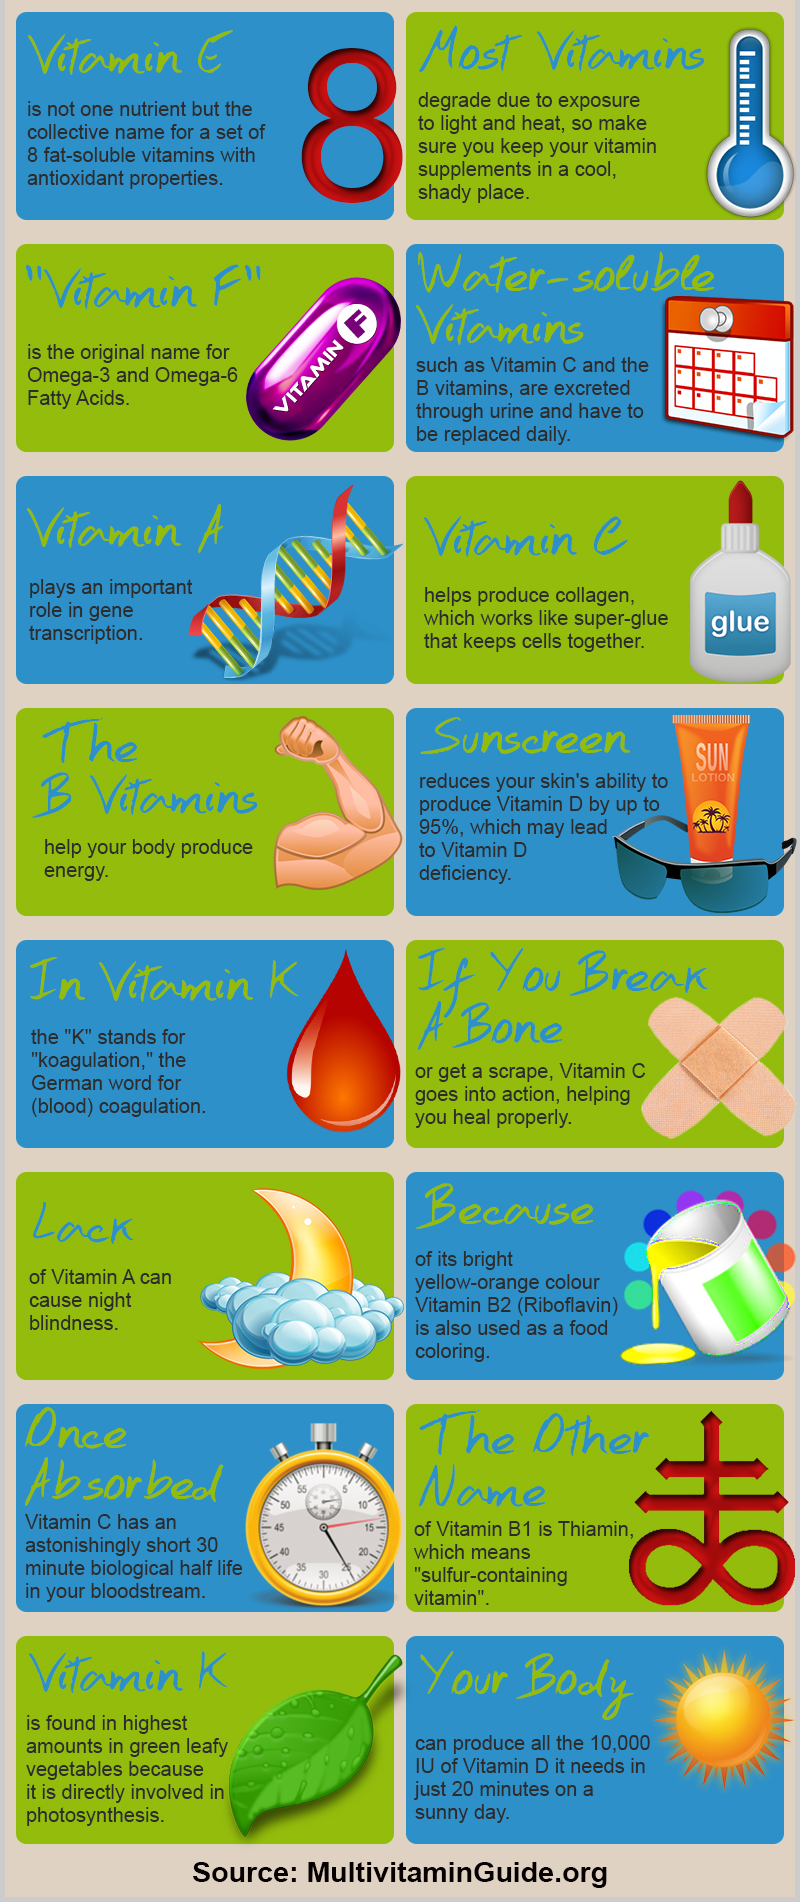 20 Fun Facts About Vit...